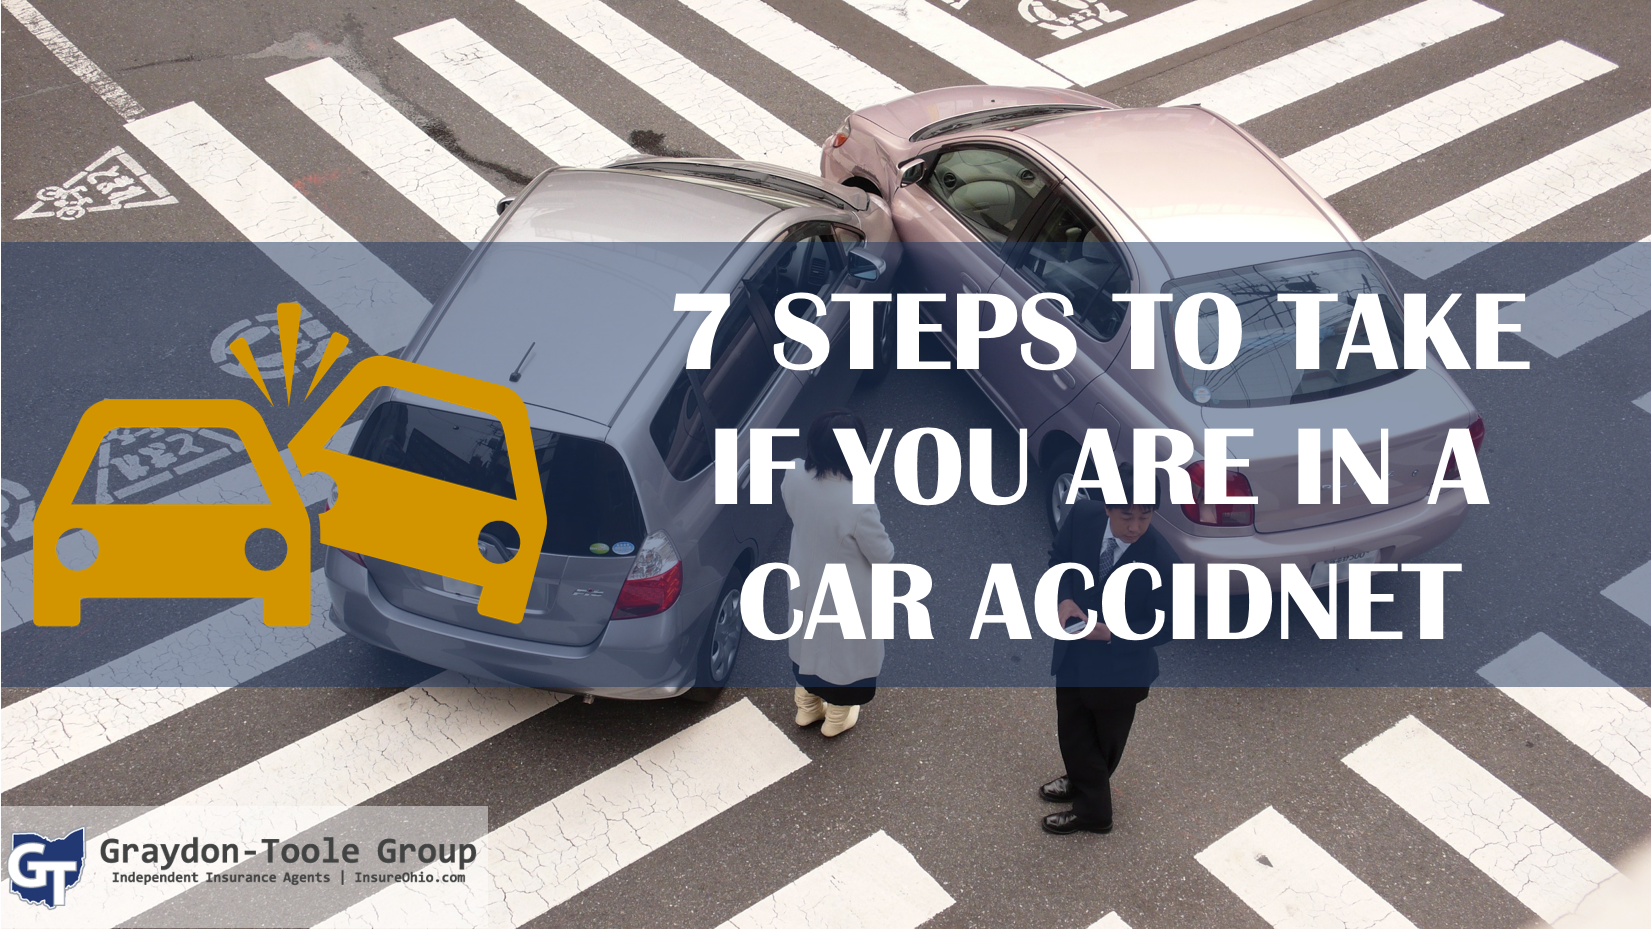 7 steps if you are in a car accident